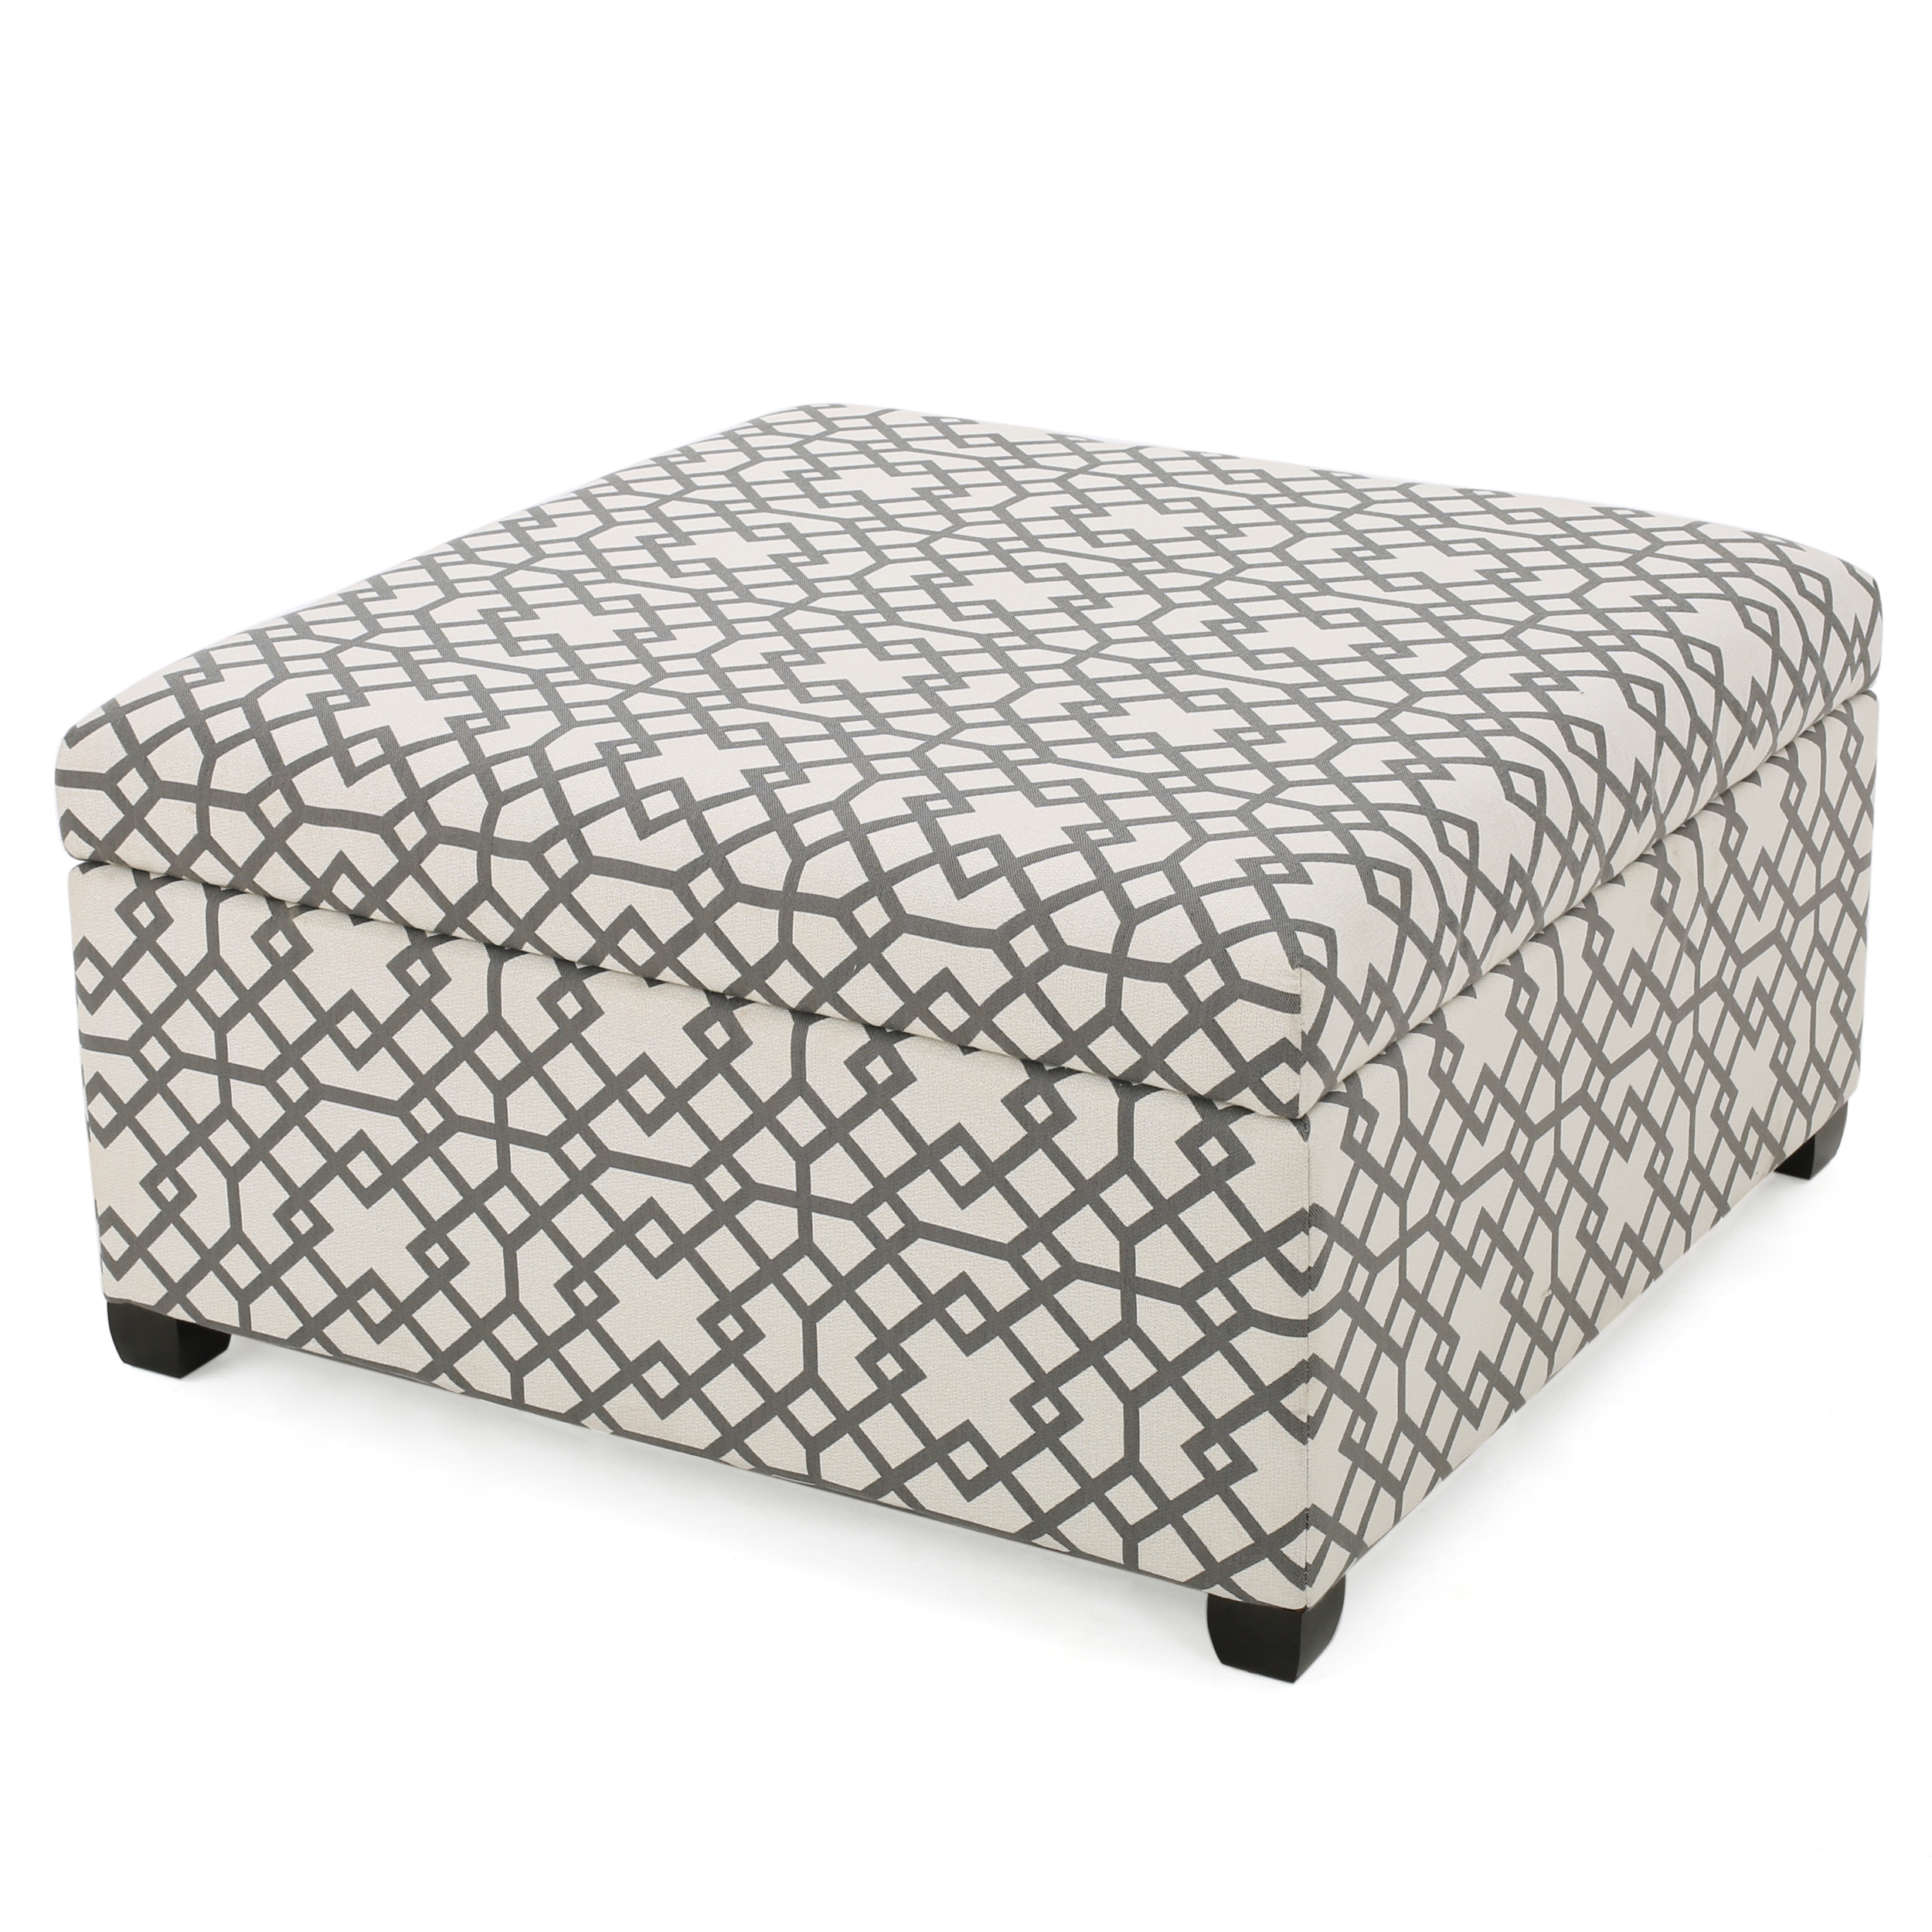 Khaite Patterned Fabric Storage Ottoman, Grey Geometric